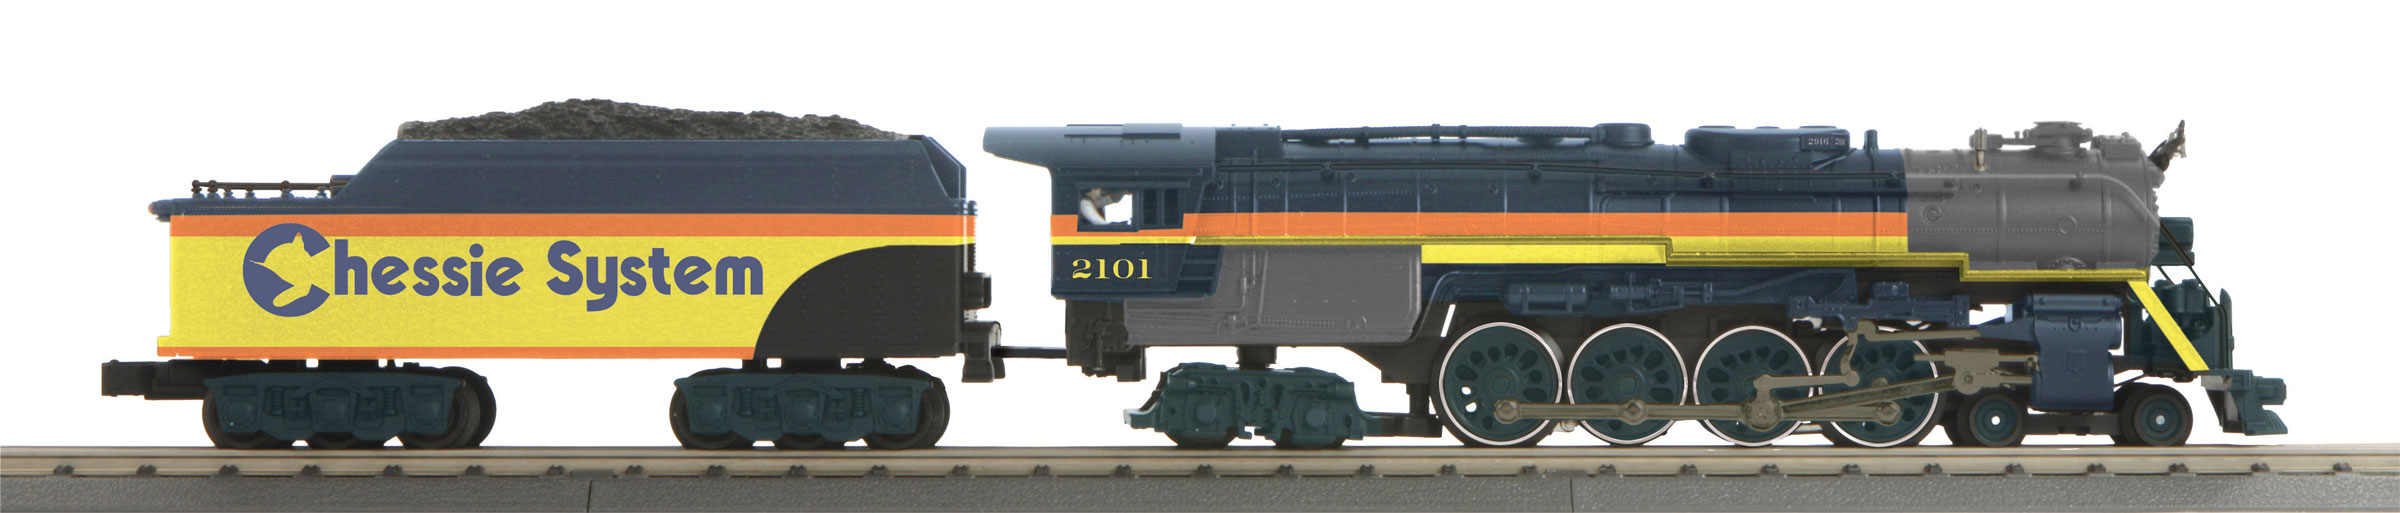 MTH 3017941 O 4-8-4 Northern 3-Rail with Proto-Sound 3.0 Imperial Chessie System 2101 507-3017941